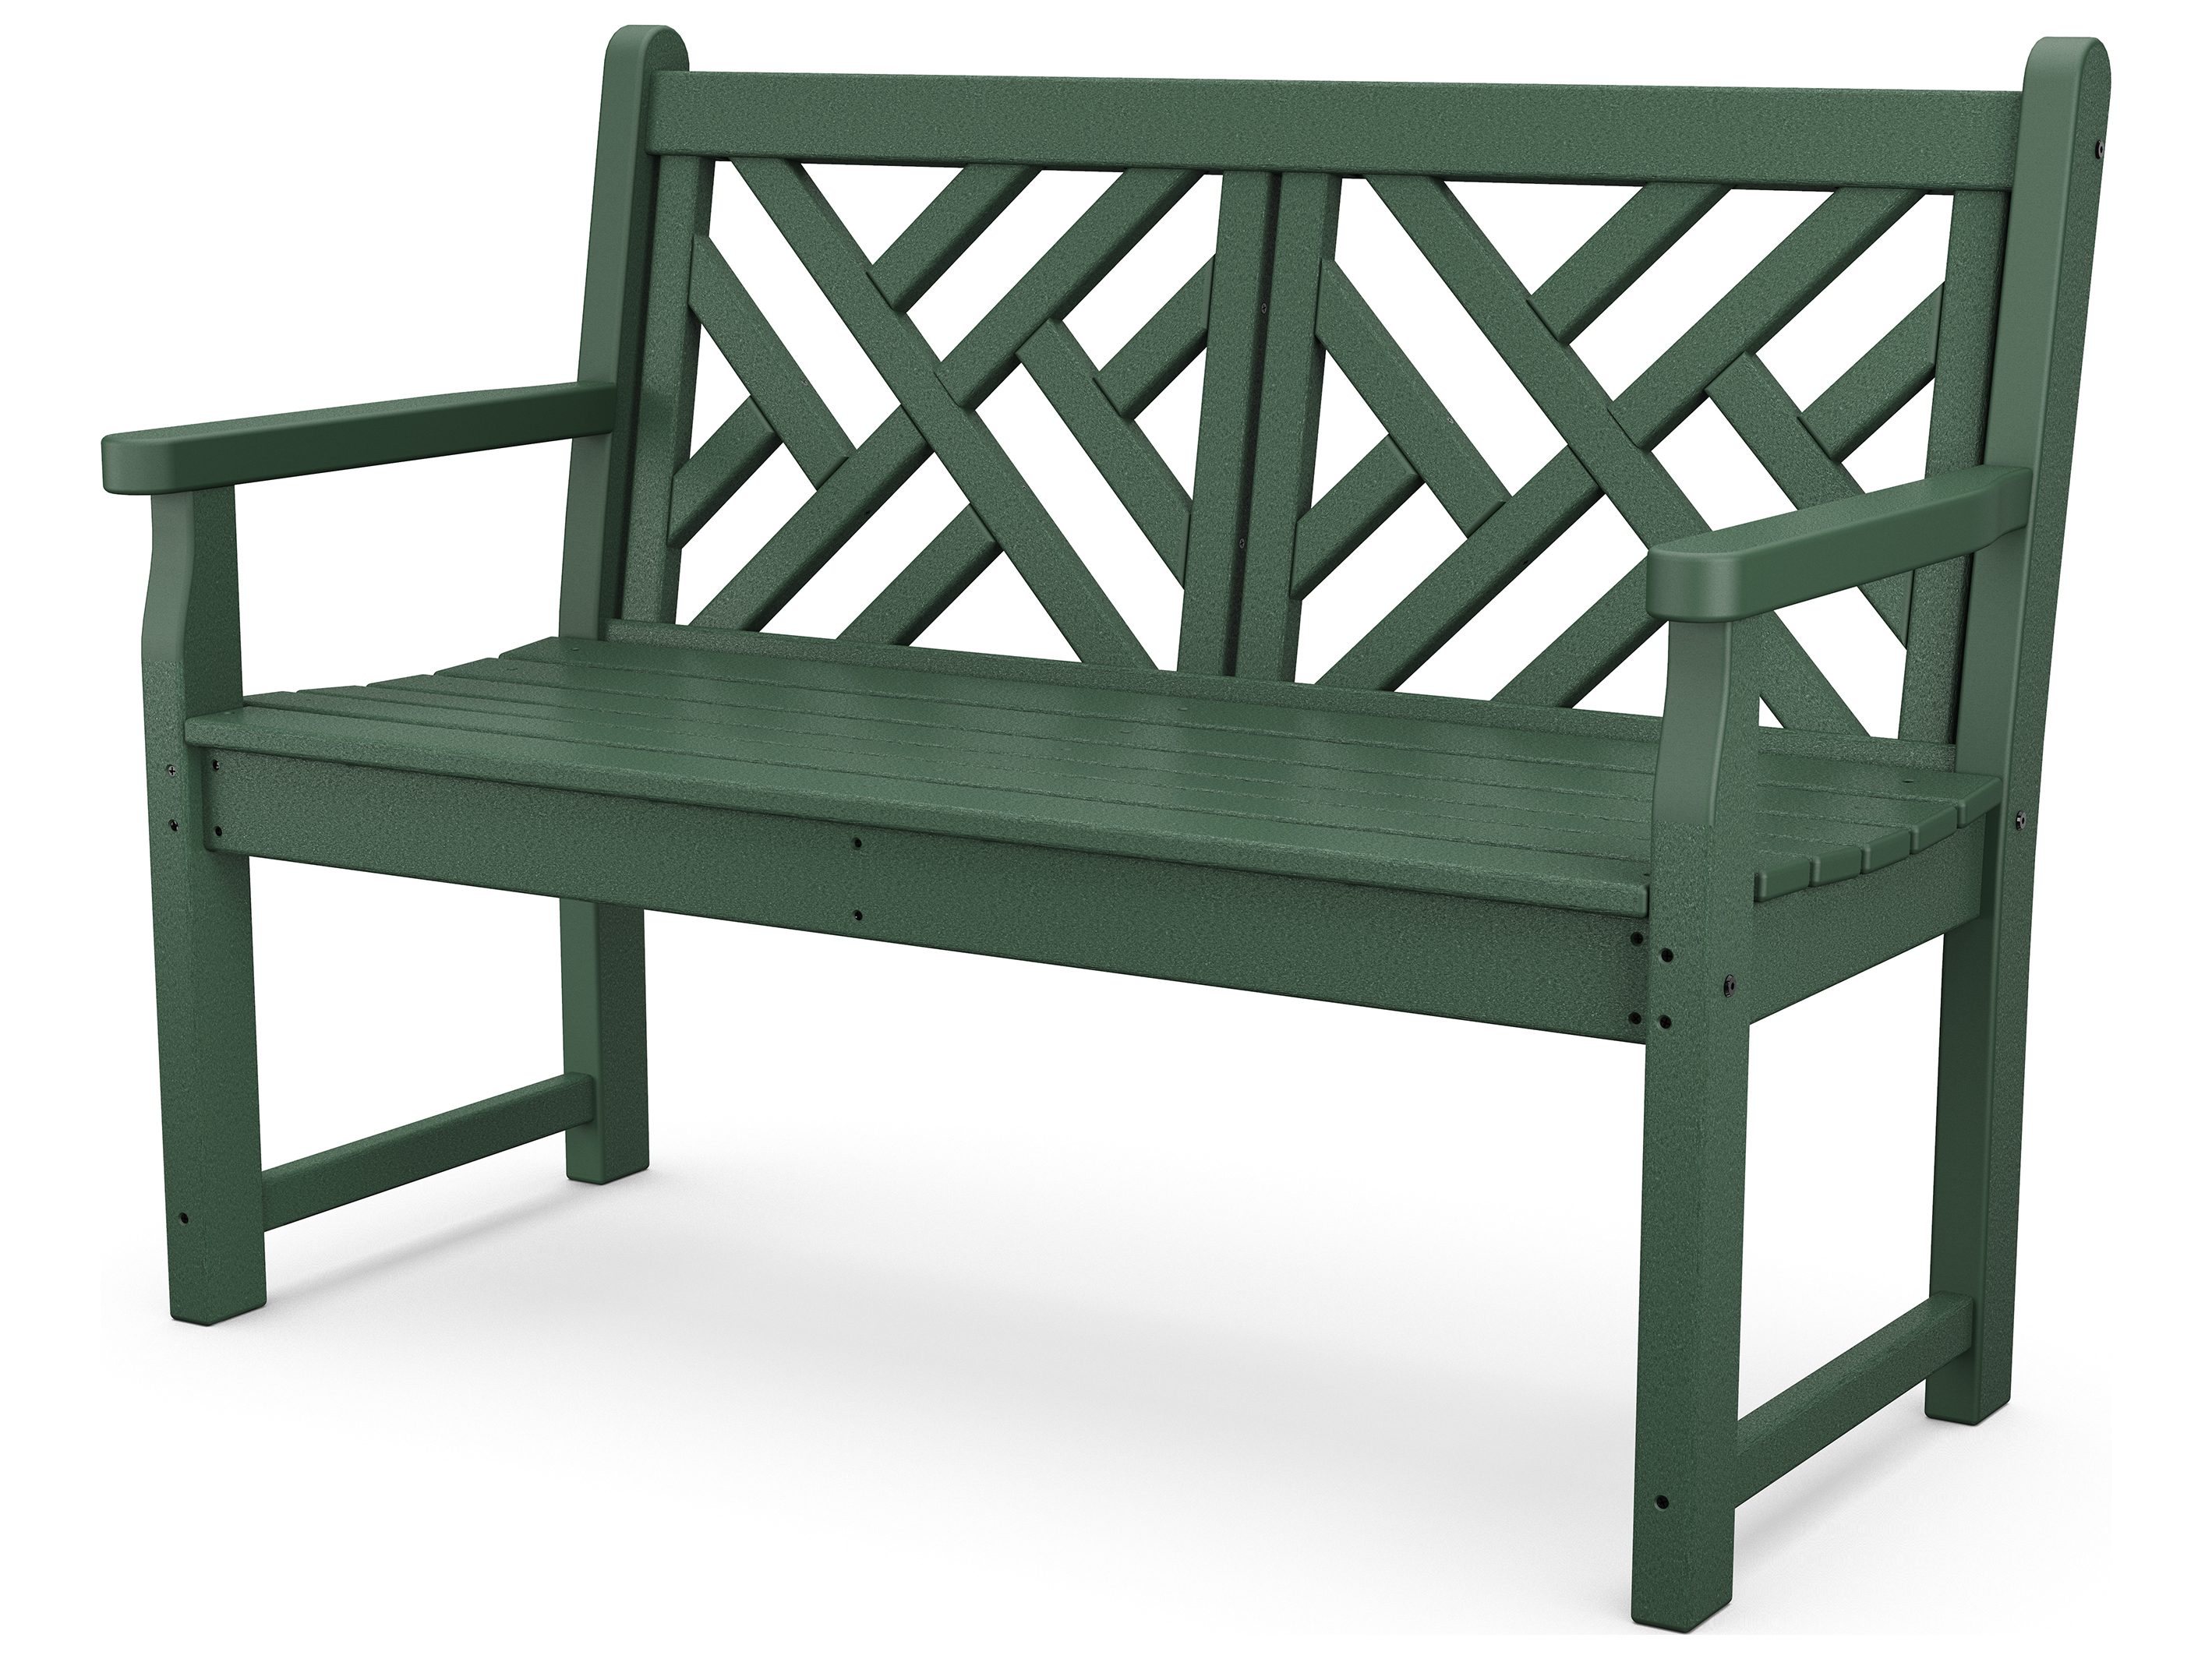 Polywood Chippendale Recycled Plastic Bench Cdb48